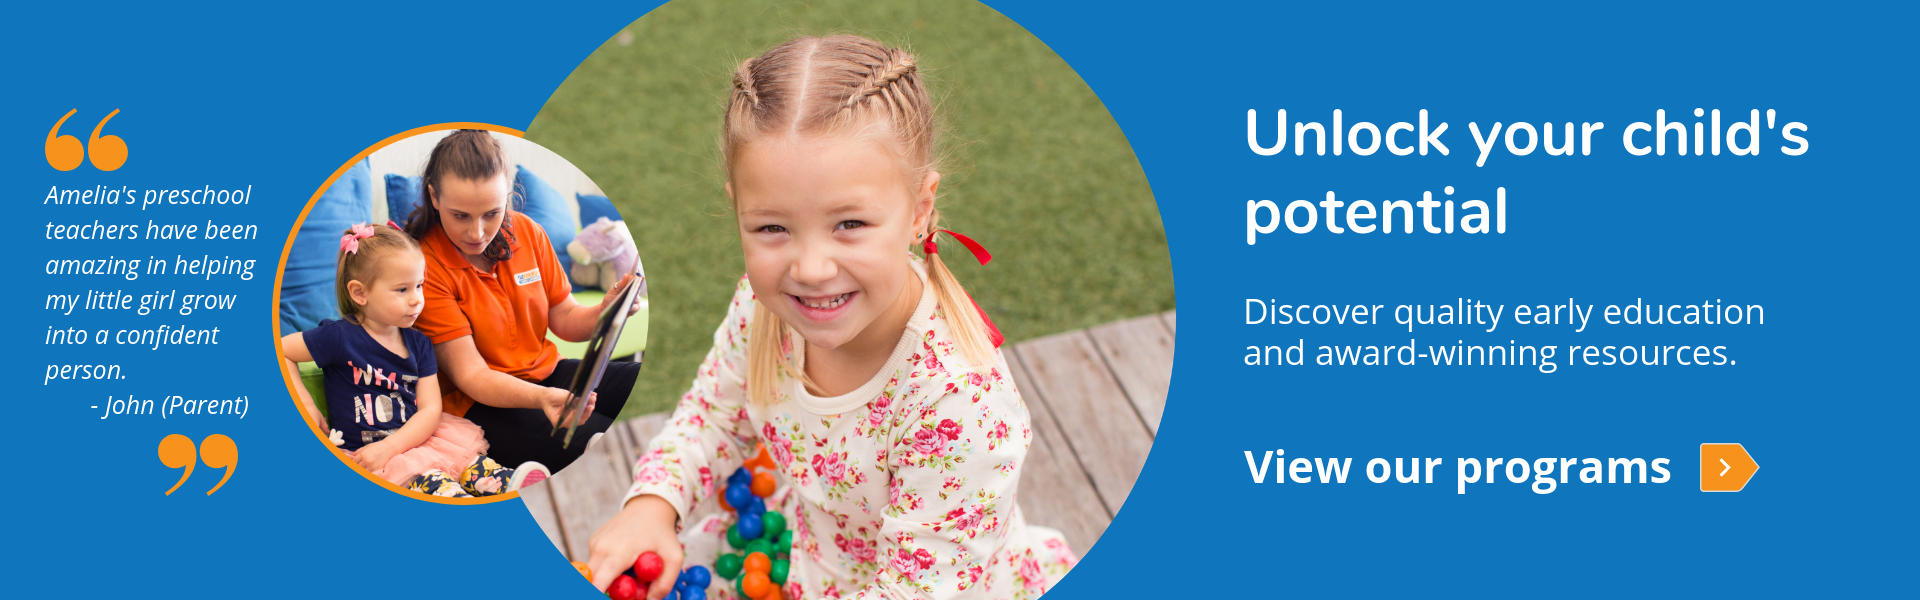 Unlock your child's potential - Discover quality early education and award-winning resources. View our programs.